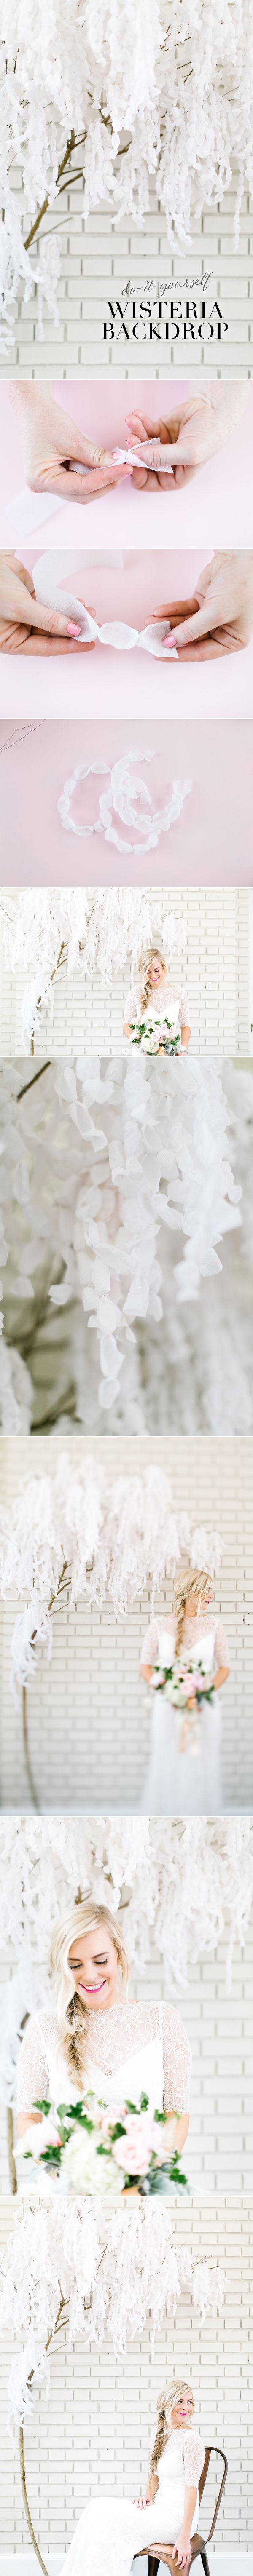 DIY - PAPER WISTERIA BACKDROP ( CLICK THROUGH FOR TUTORIAL ) >> YOU WILL NEED : CREPE PAPER STREAMERS, SCISSORS, JEWELRY OR FLORAL WIRE, WIRE CUTTERS, TRES BRANCH